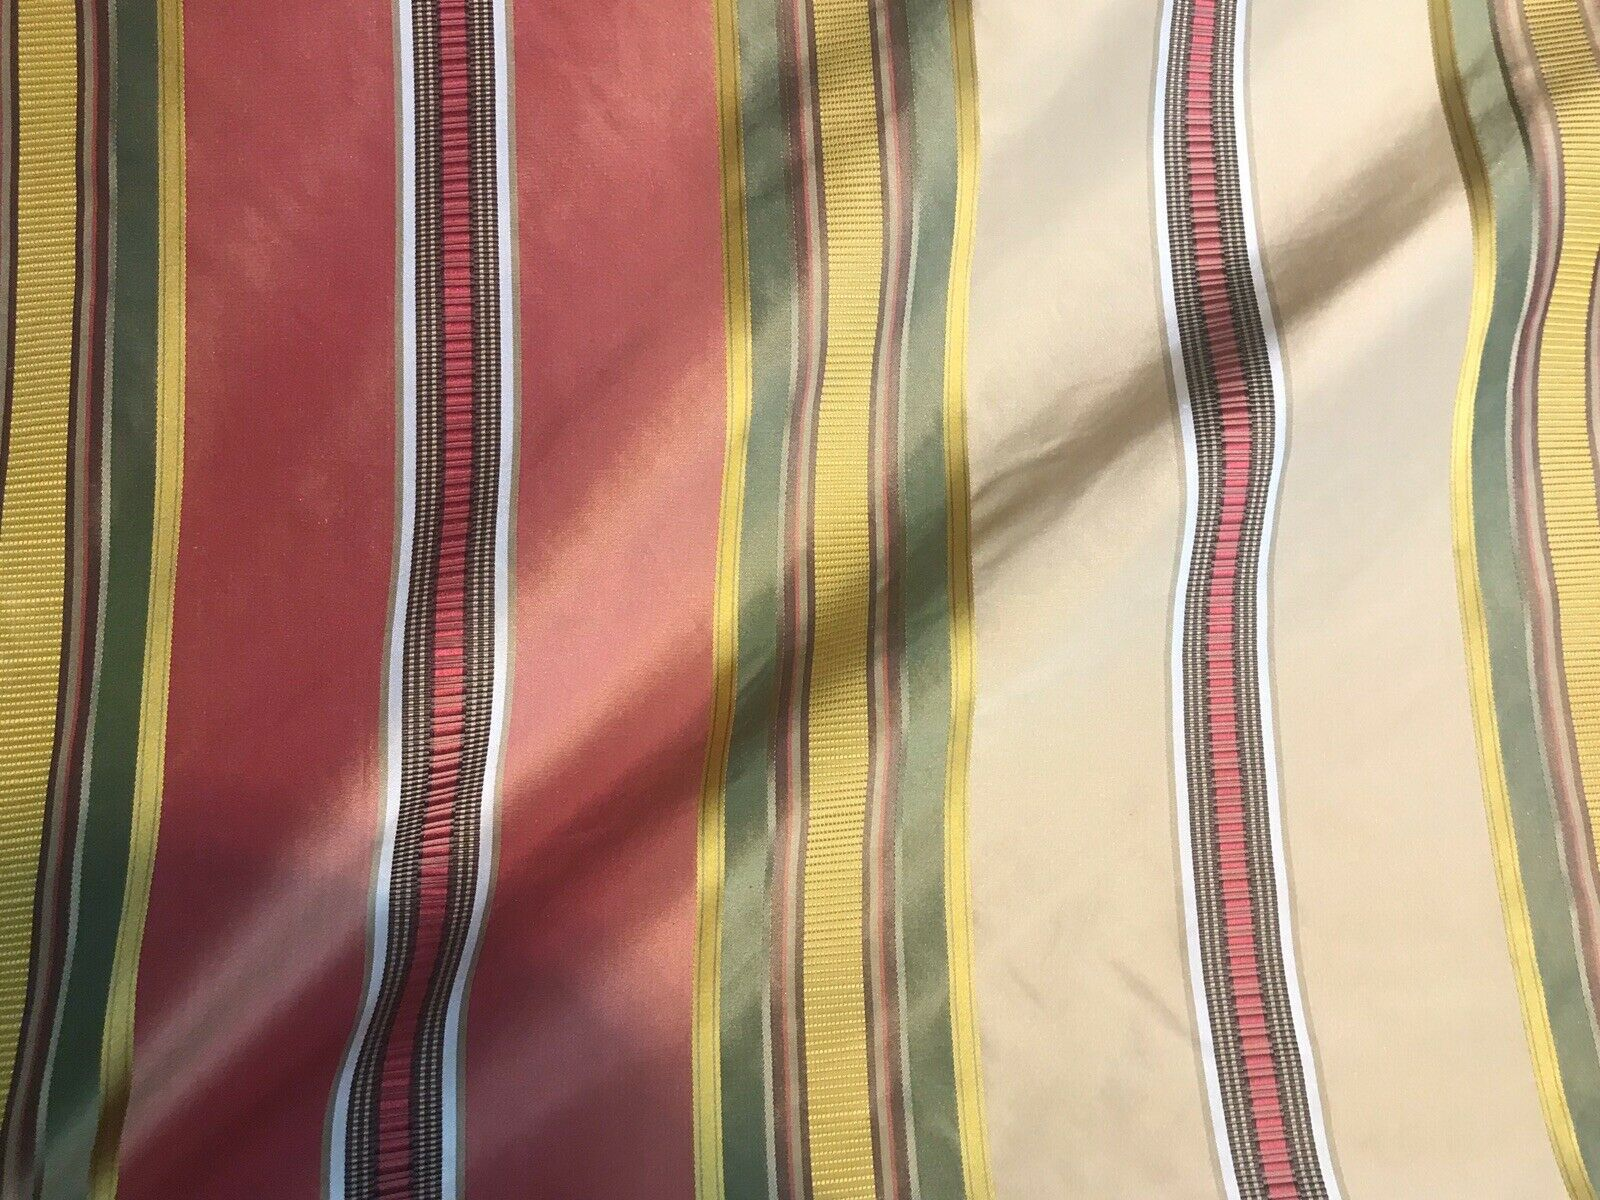 NEW Designer 100% Silk Taffeta Dupioni Ribbon Stripes Fabric - Multicolor